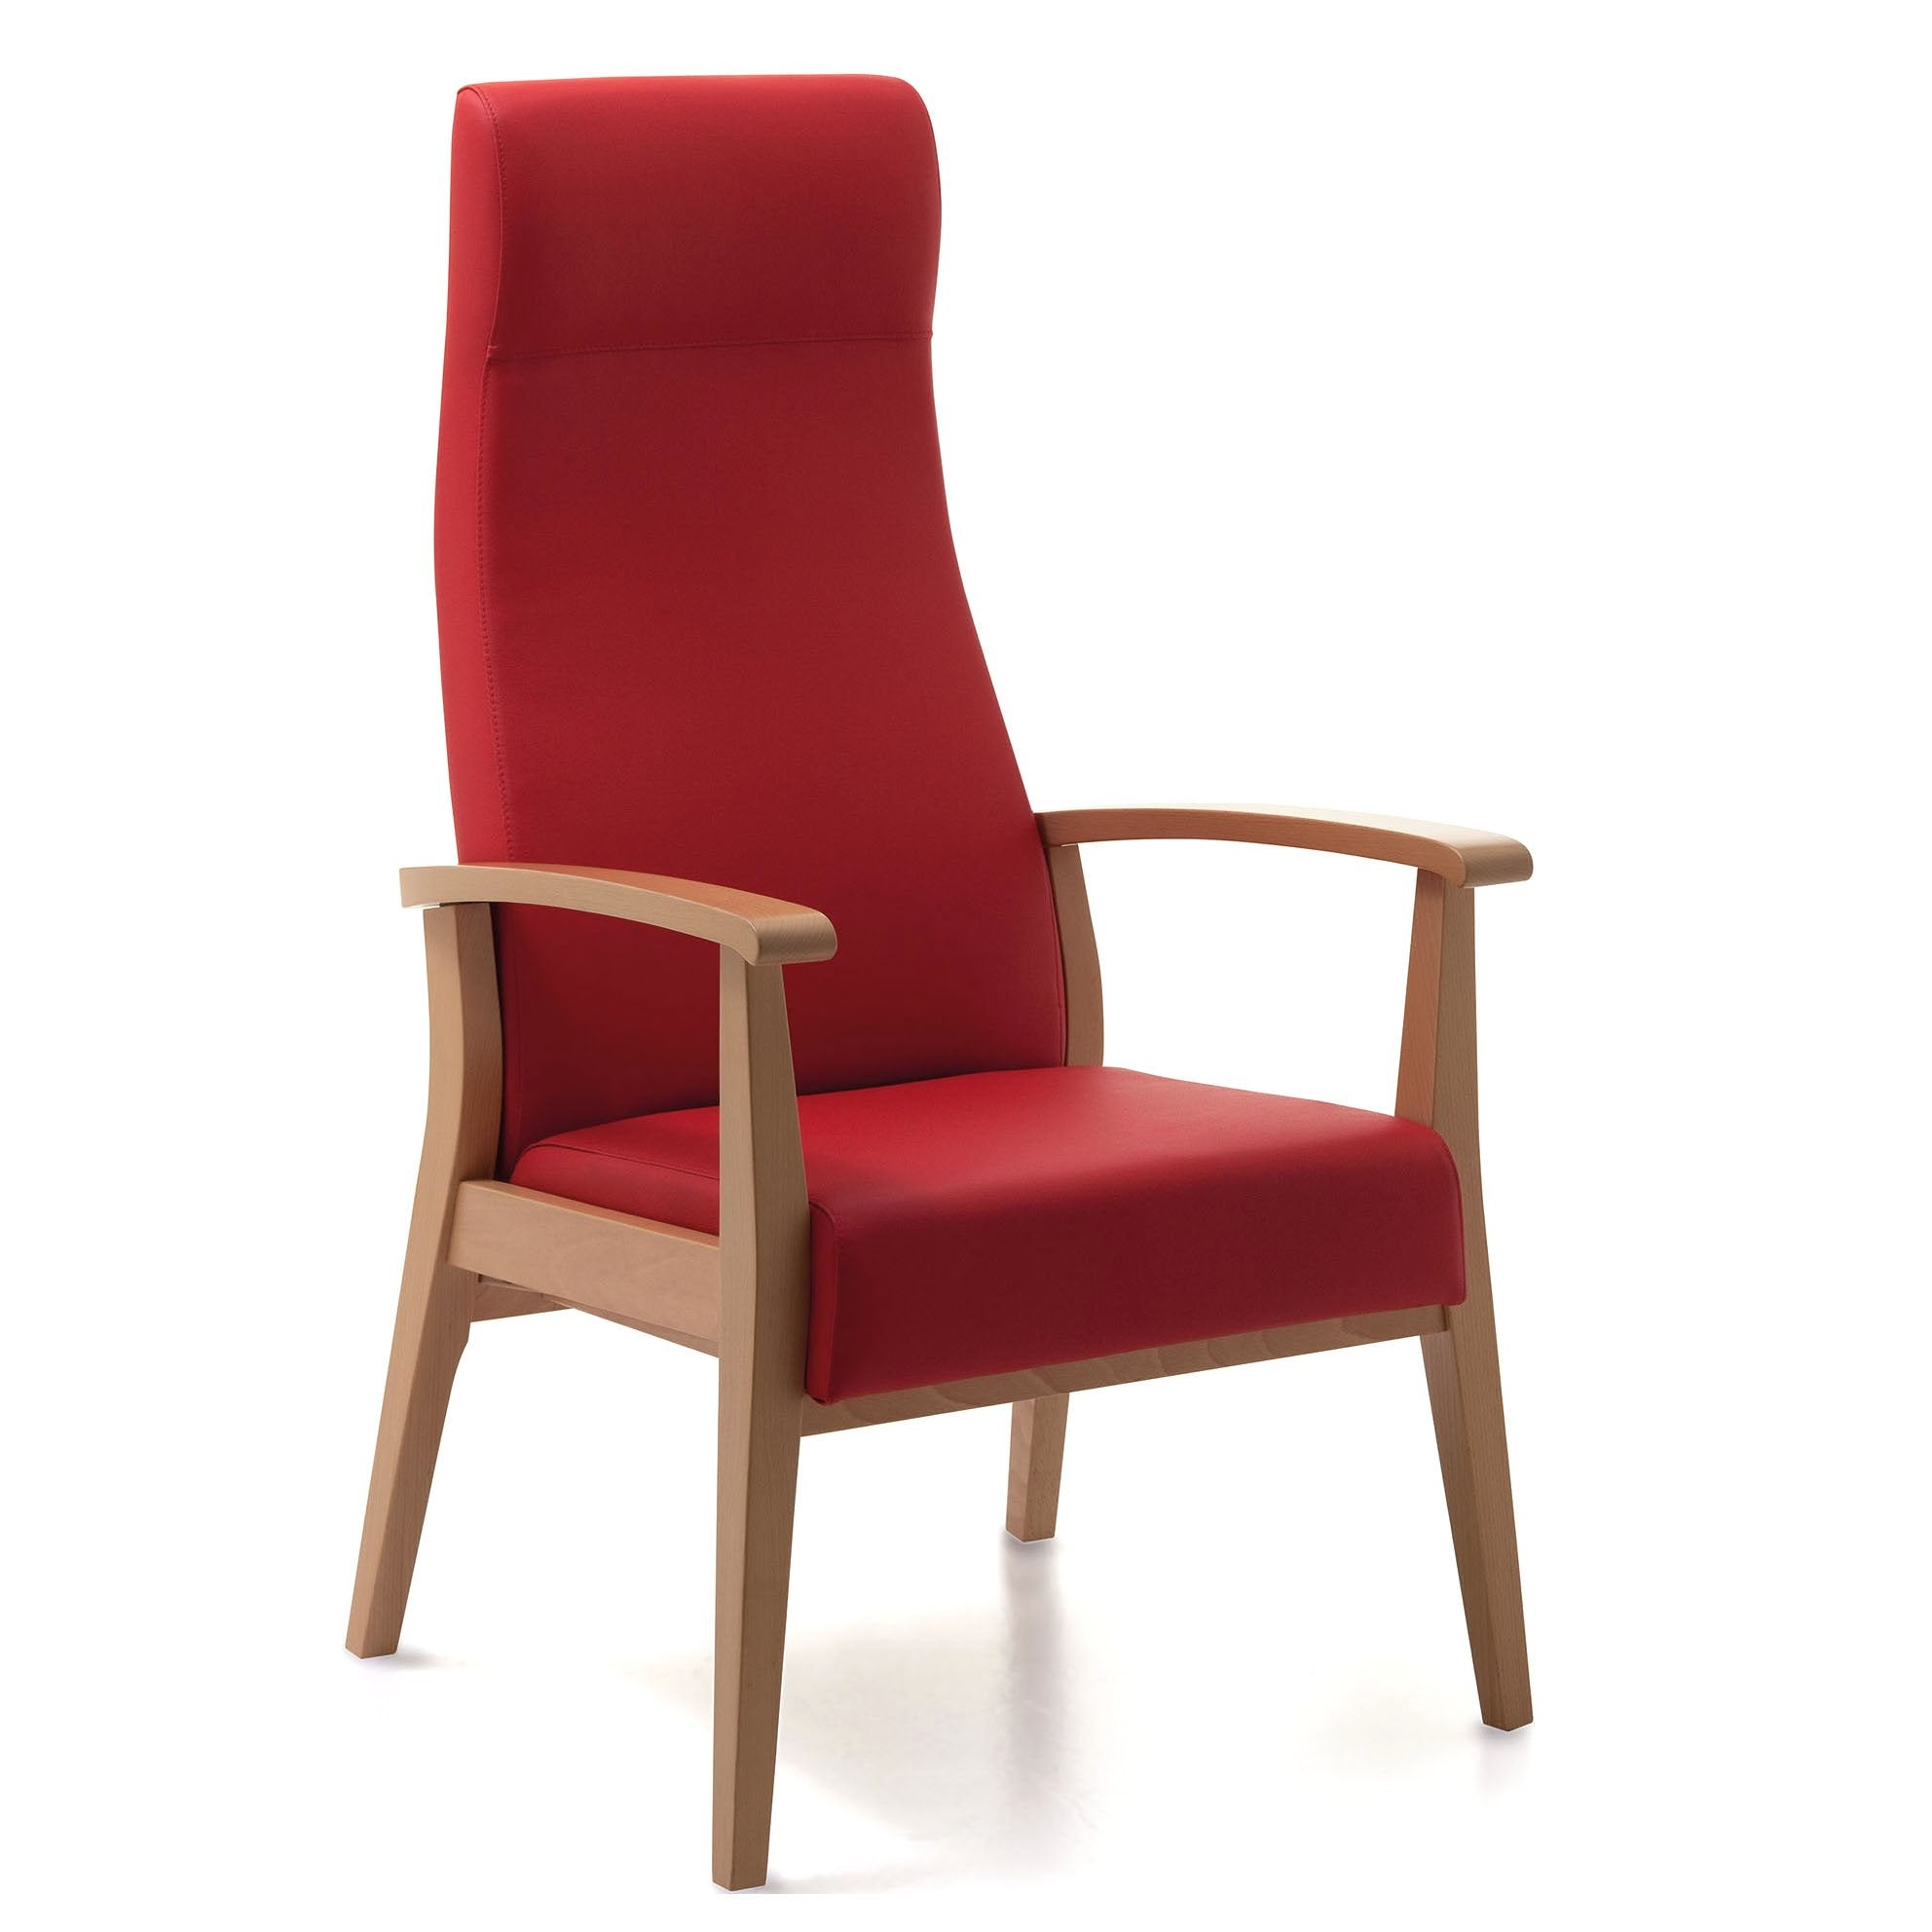 Aero 52-63/3 Lounge Chair-Piaval-Contract Furniture Store